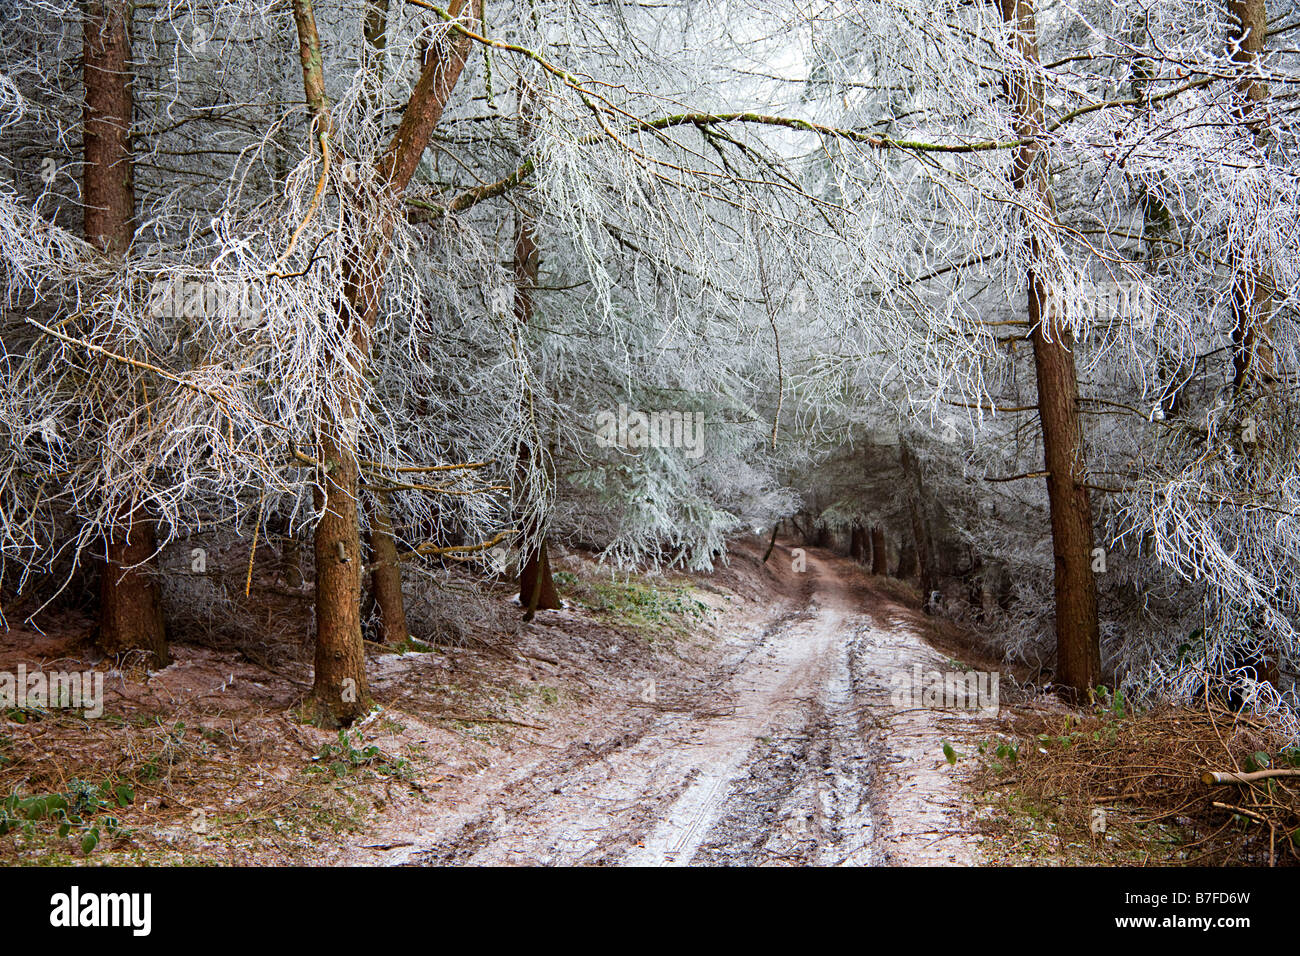 Track through coniferous woods in winter with trees covered in thick frost Wales UK - Stock Image